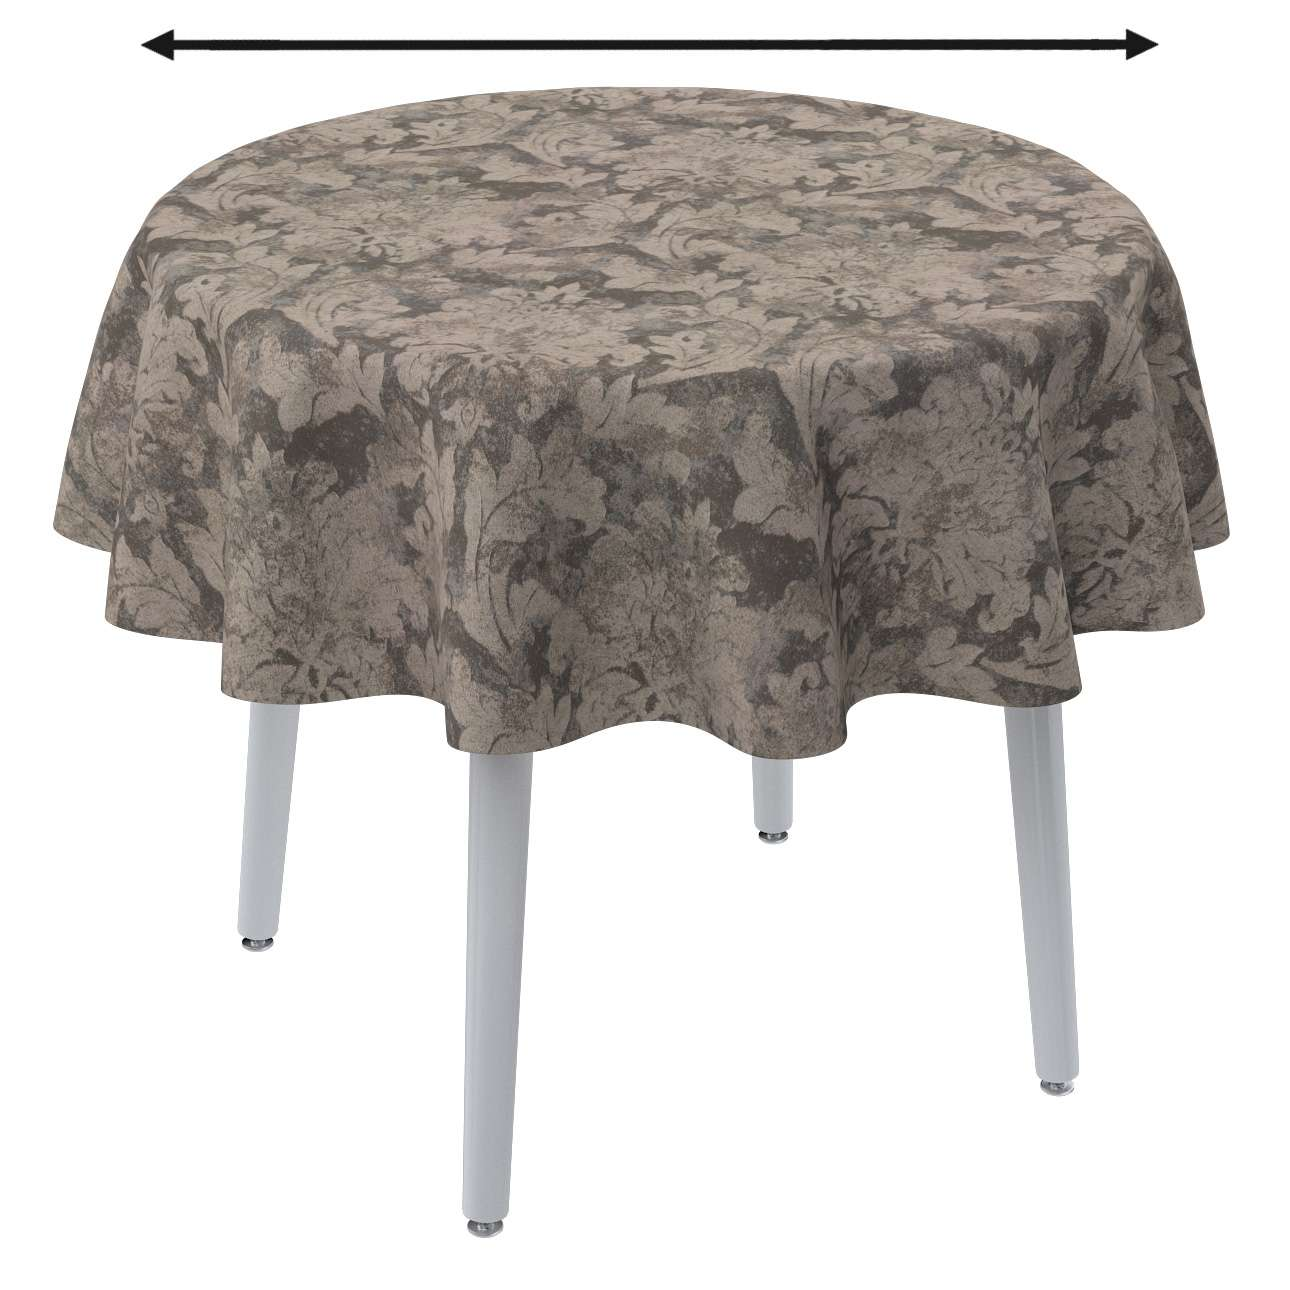 Round tablecloth in collection Retro Glam, fabric: 142-88